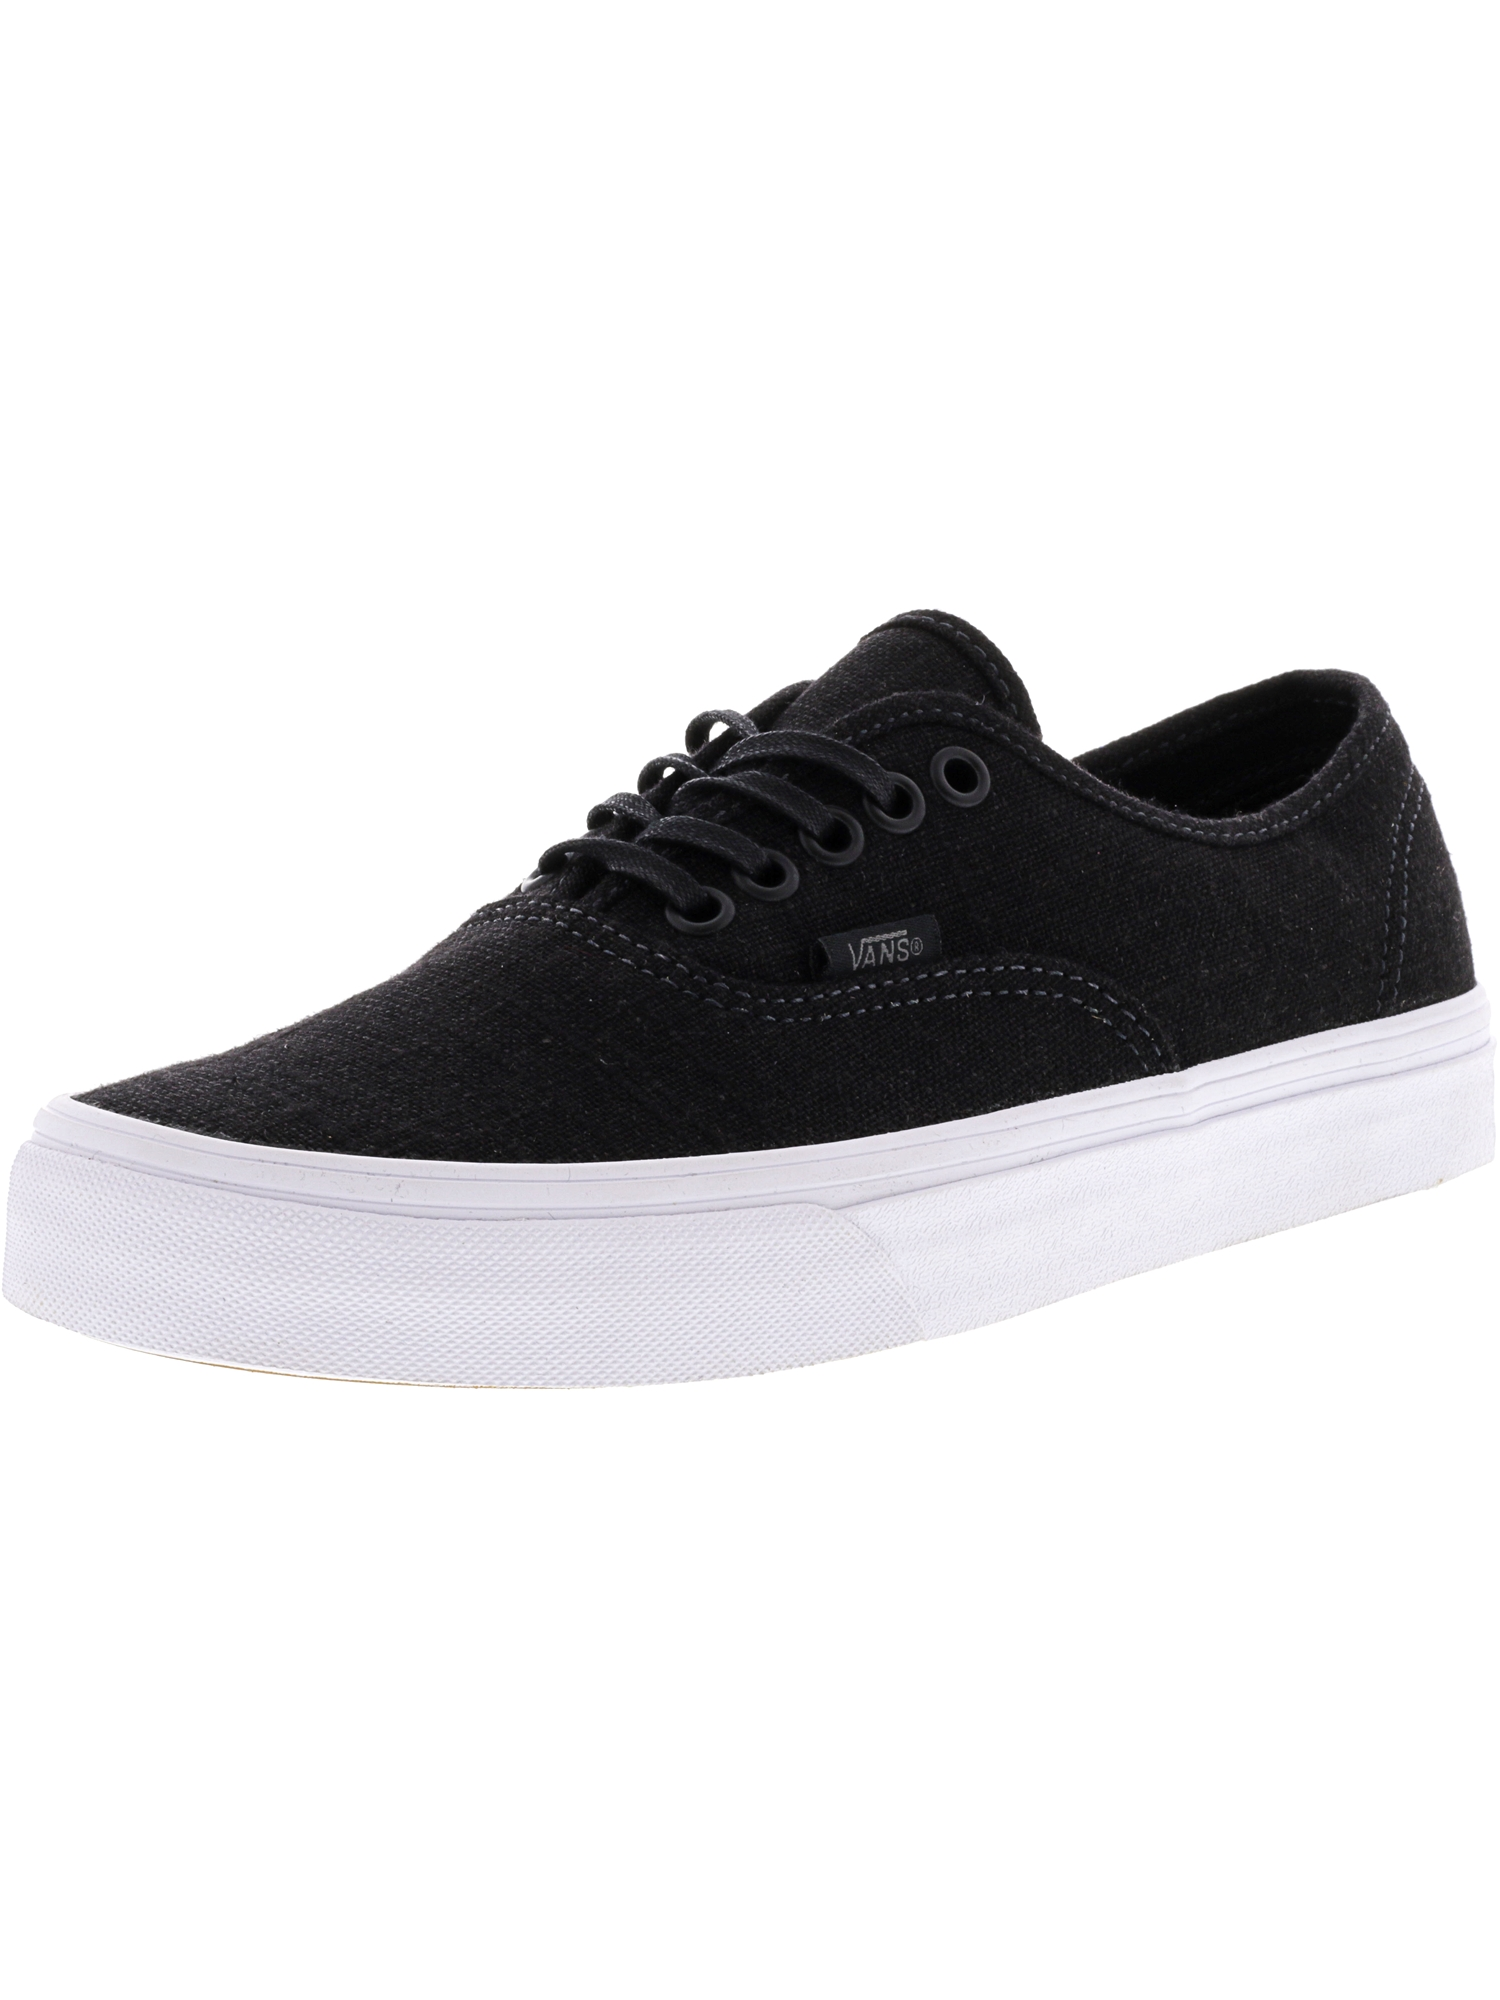 d05fa2a2ec Vans - Vans Authentic Hemp Linen Black   True White Ankle-High Canvas  Skateboarding Shoe - 8M 6.5M - Walmart.com